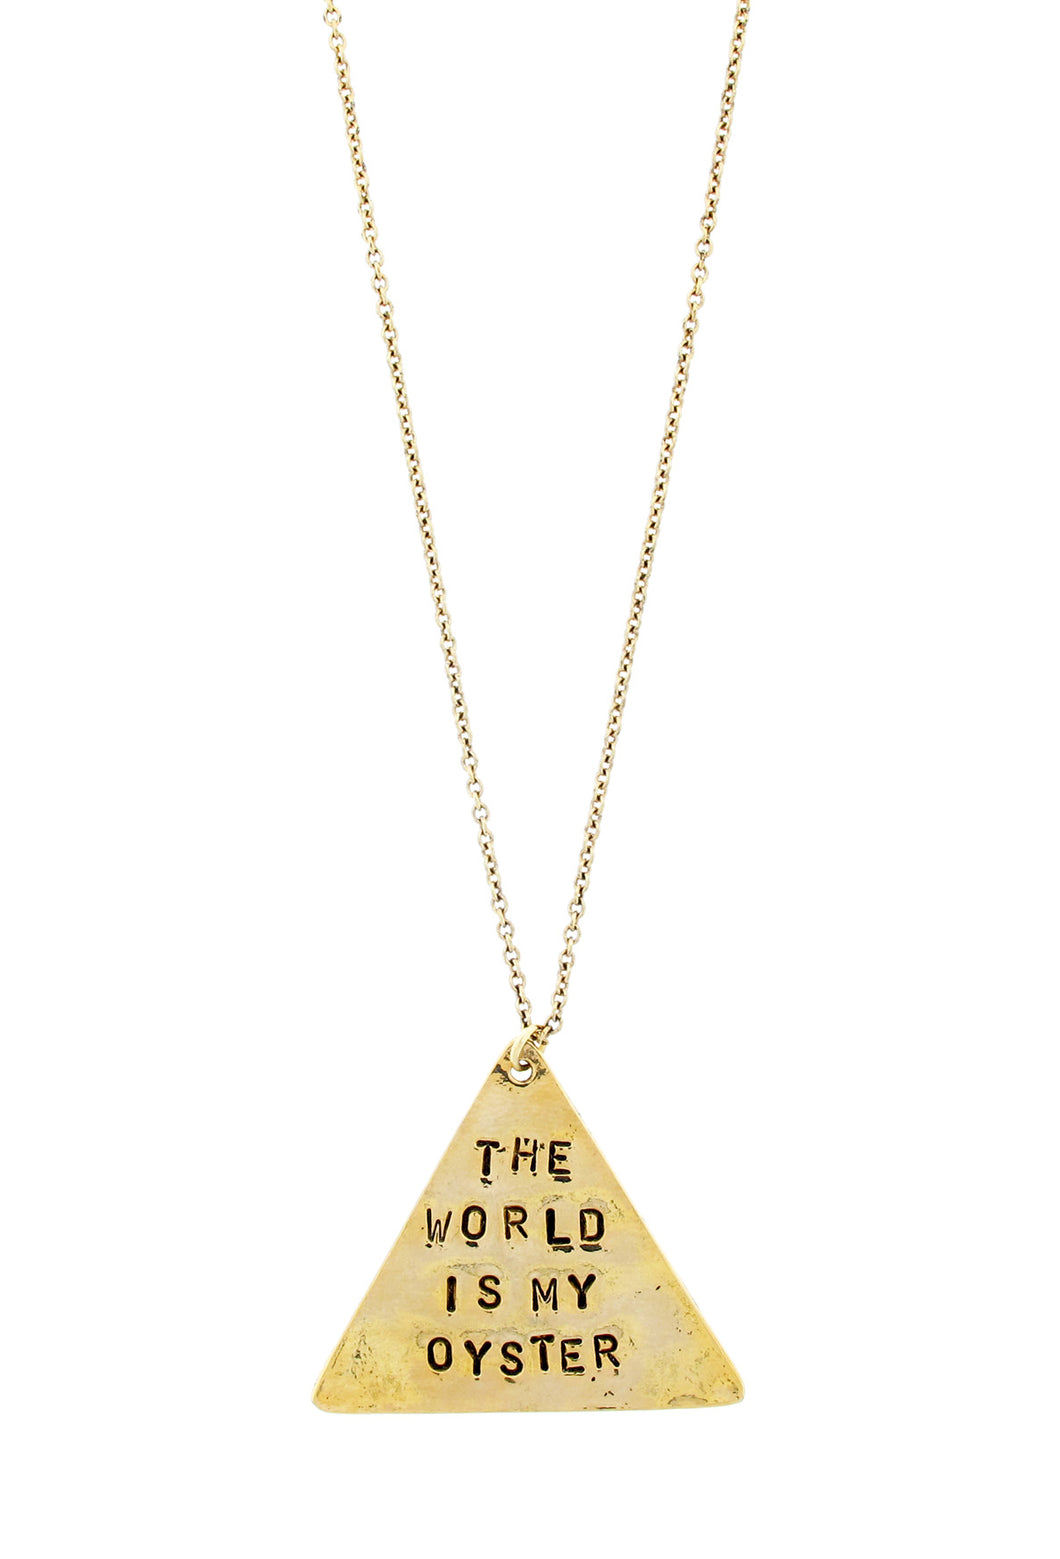 THE WORLD IS YOUR OYSTER NECKLACE